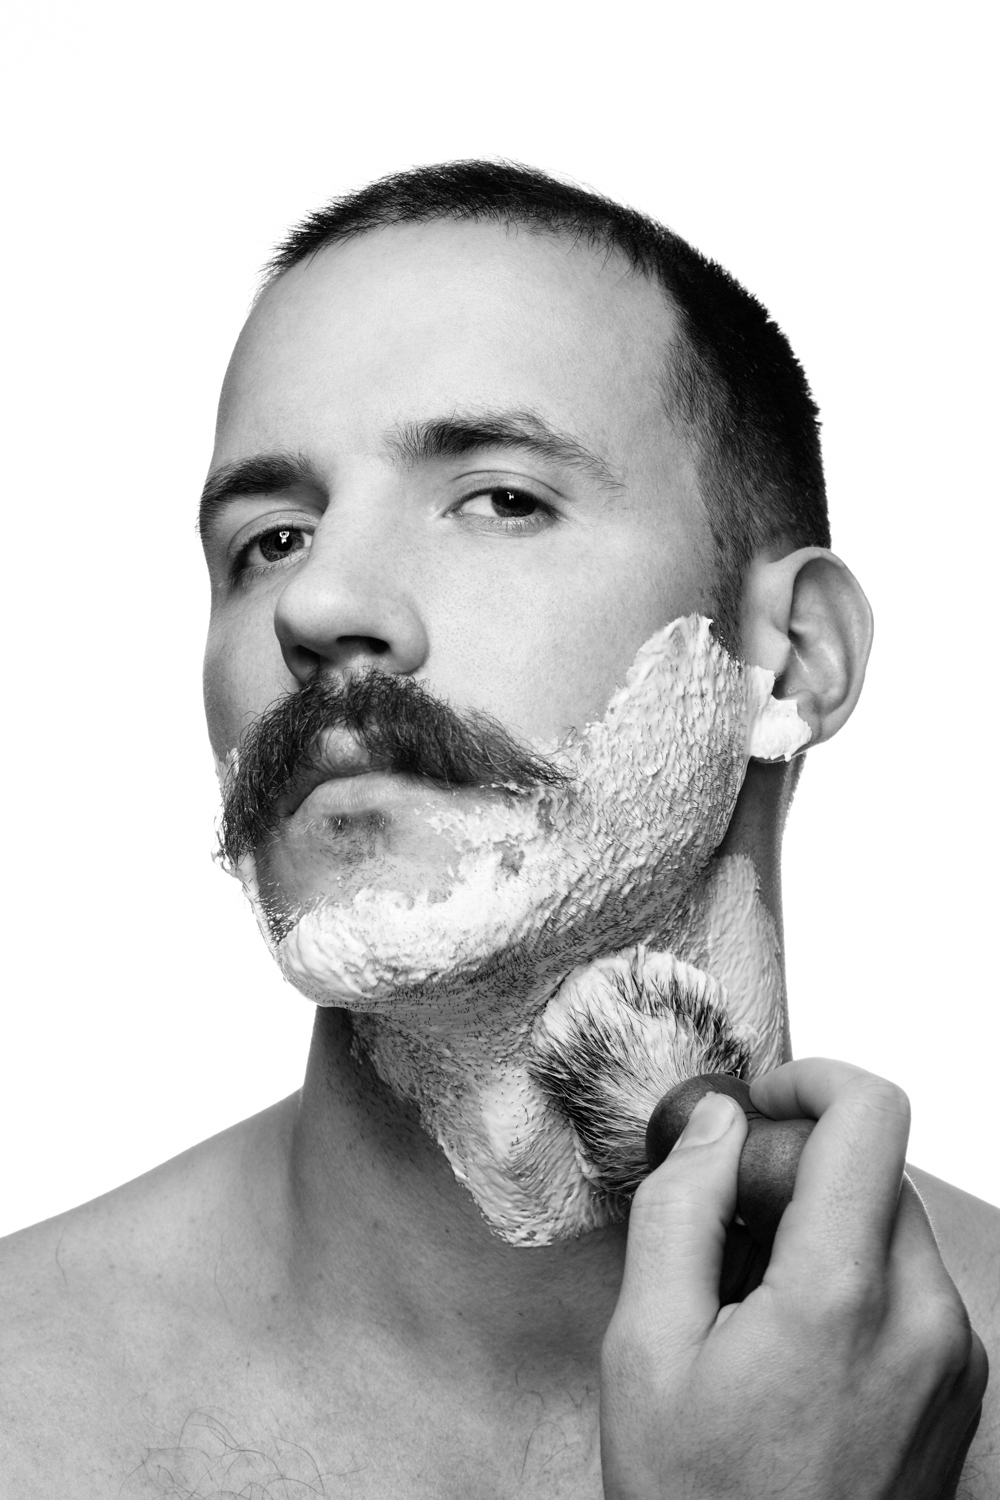 Man on white background studio photography black and white portraits man shaving